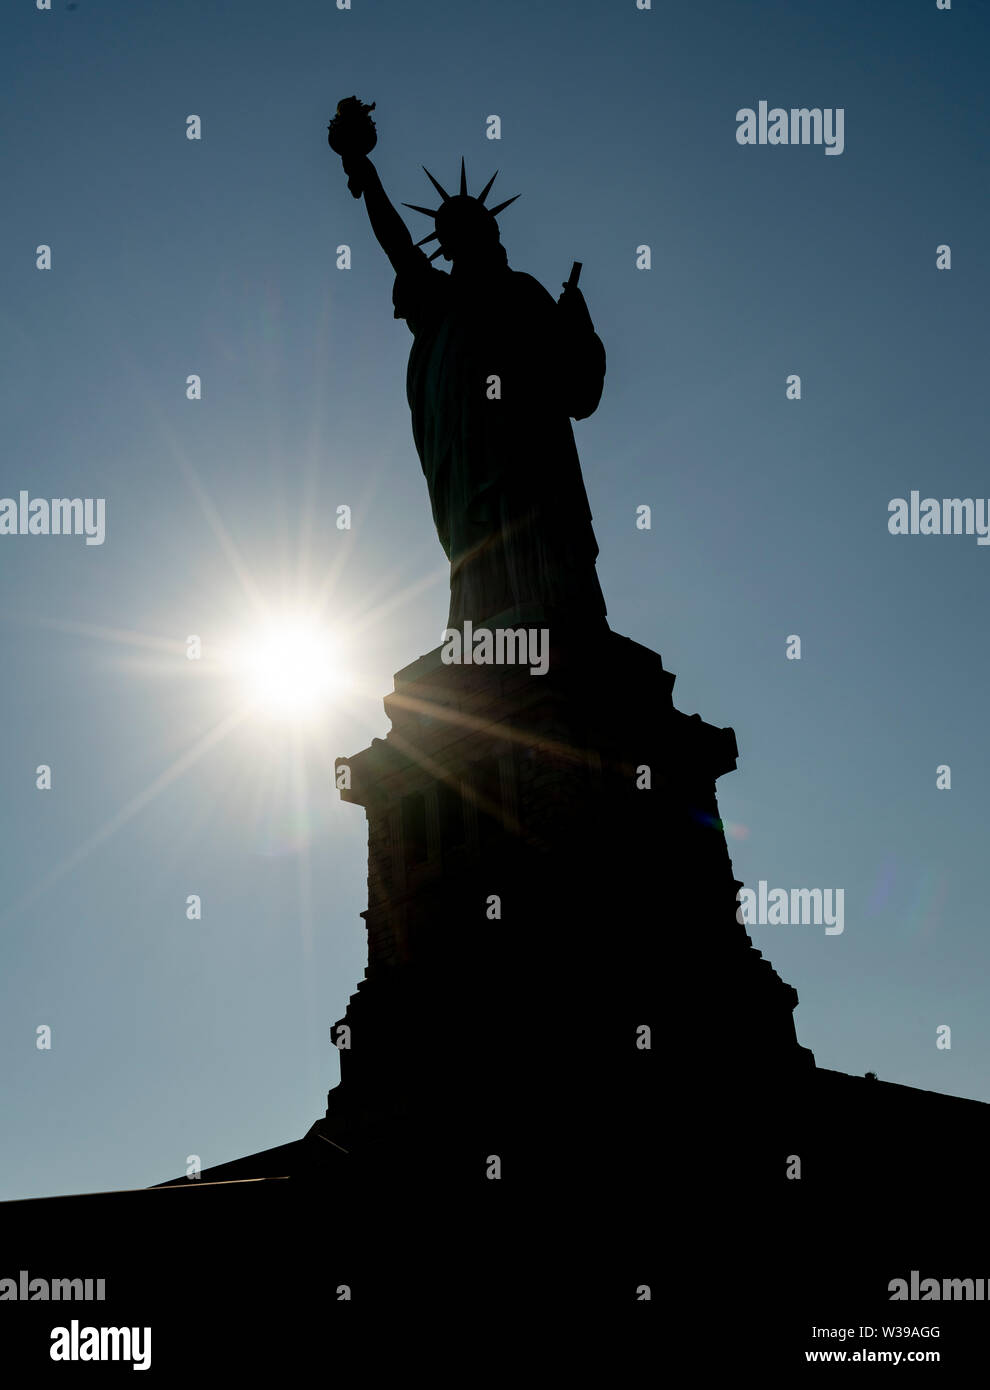 It's a cutout on blue of lady liberty in the Statue of Liberty - Stock Image